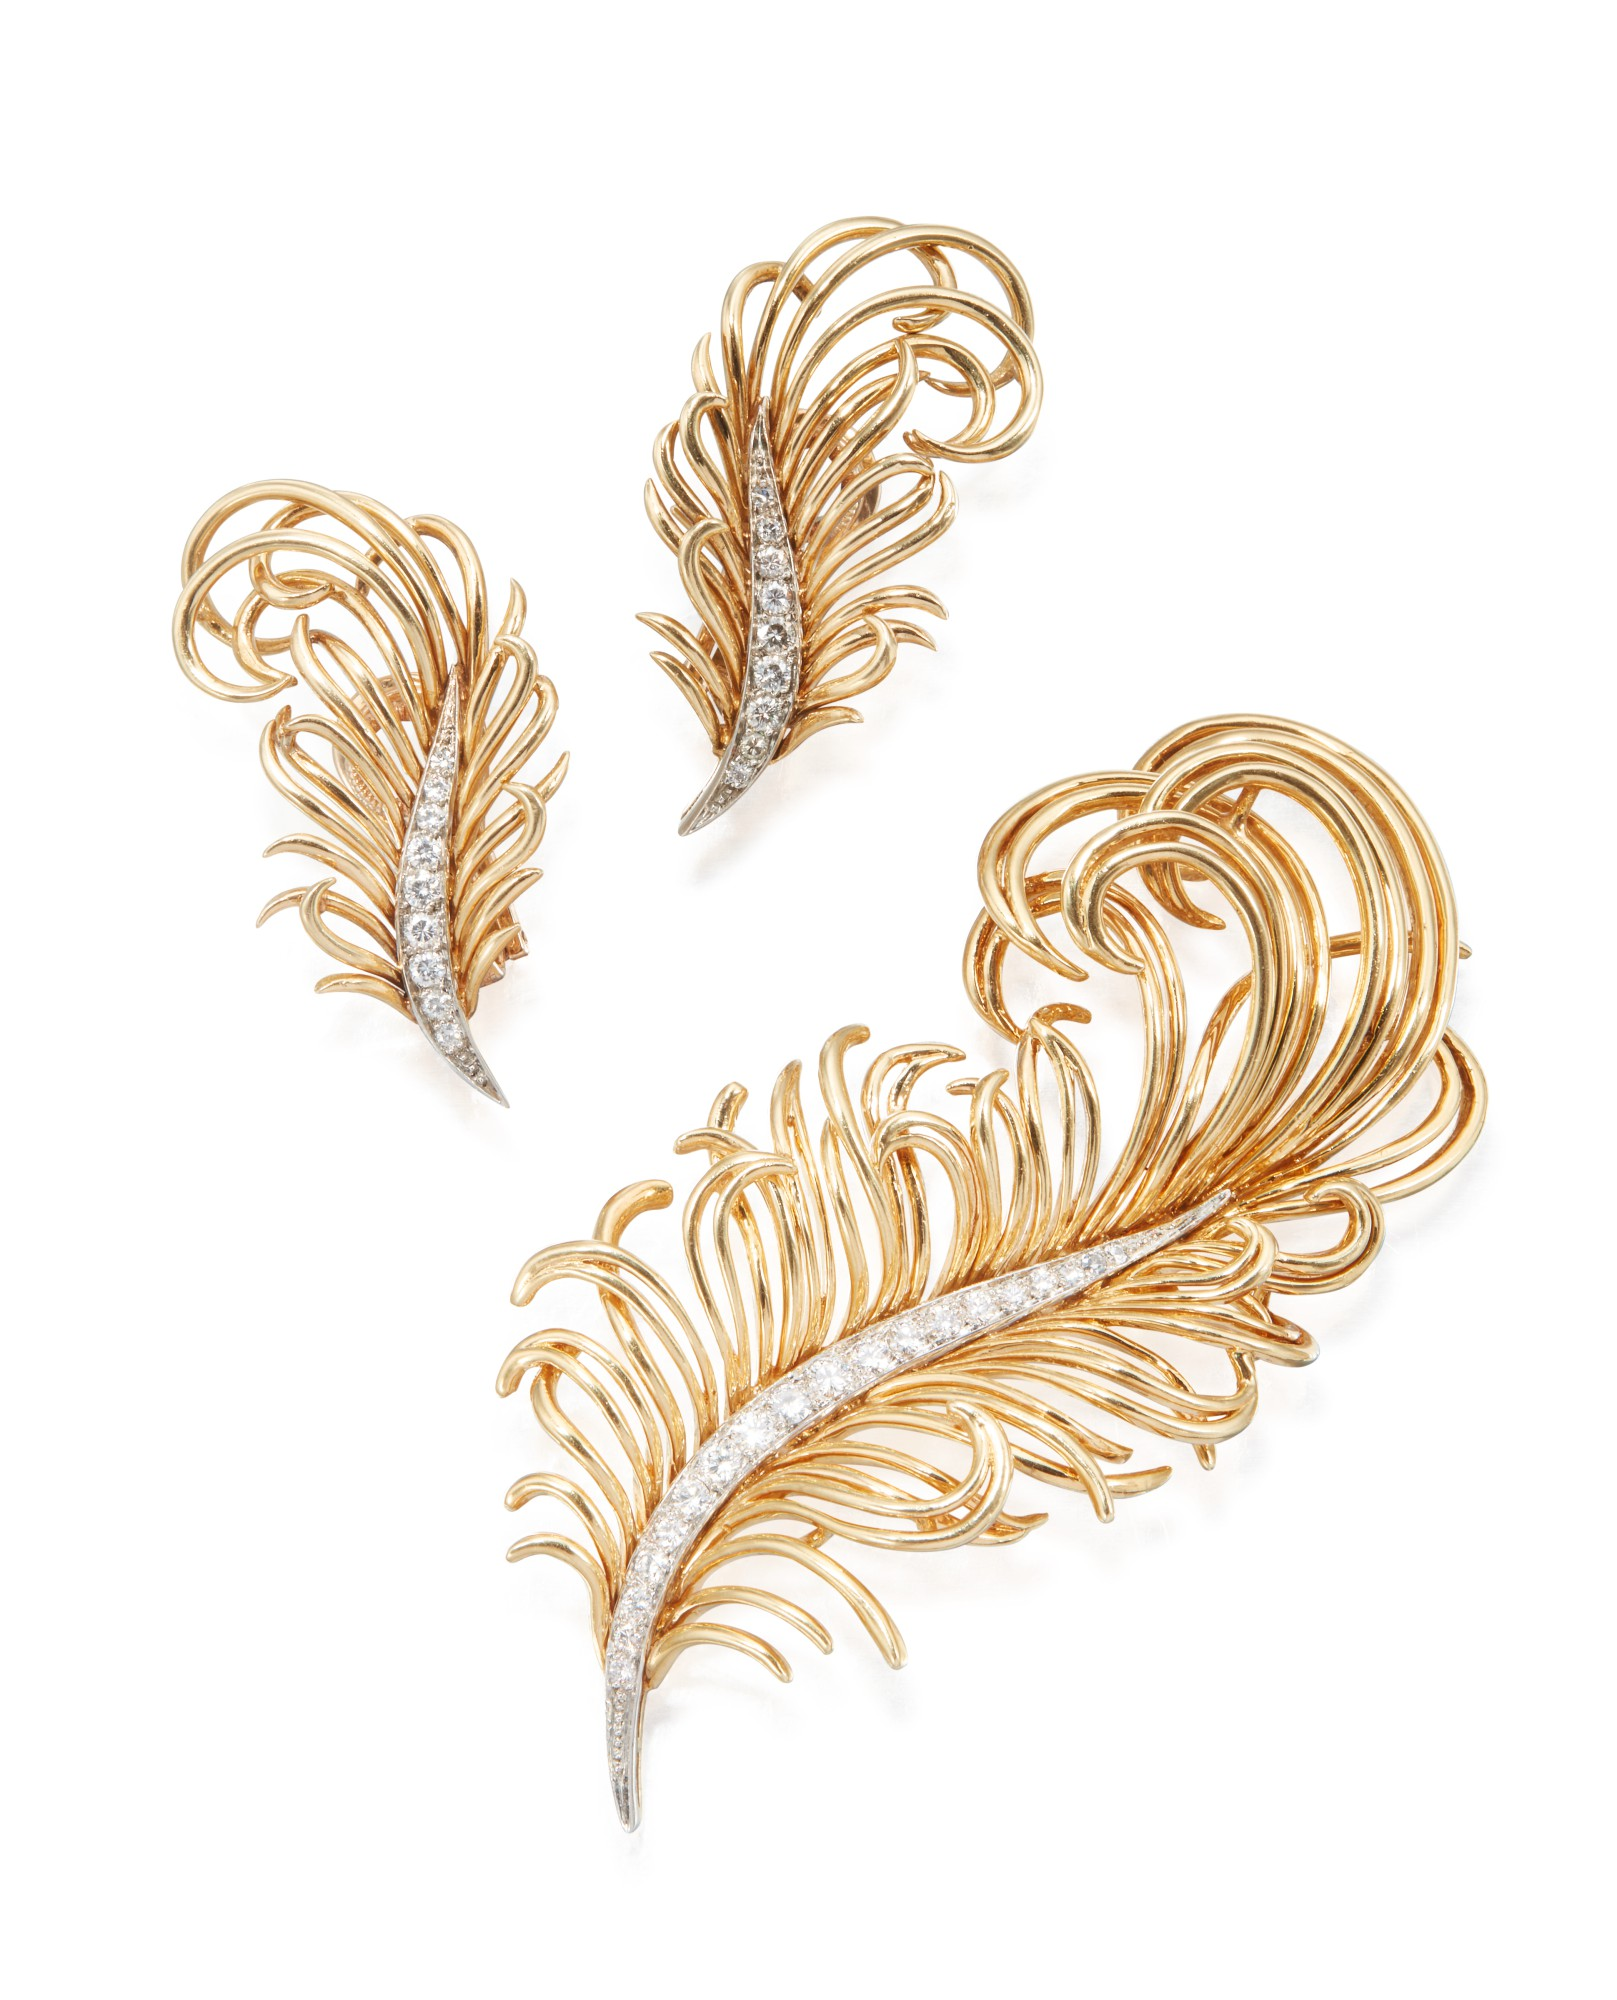 GOLD AND DIAMOND BROOCH AND PAIR OF EARCLIPS, TIFFANY & CO.